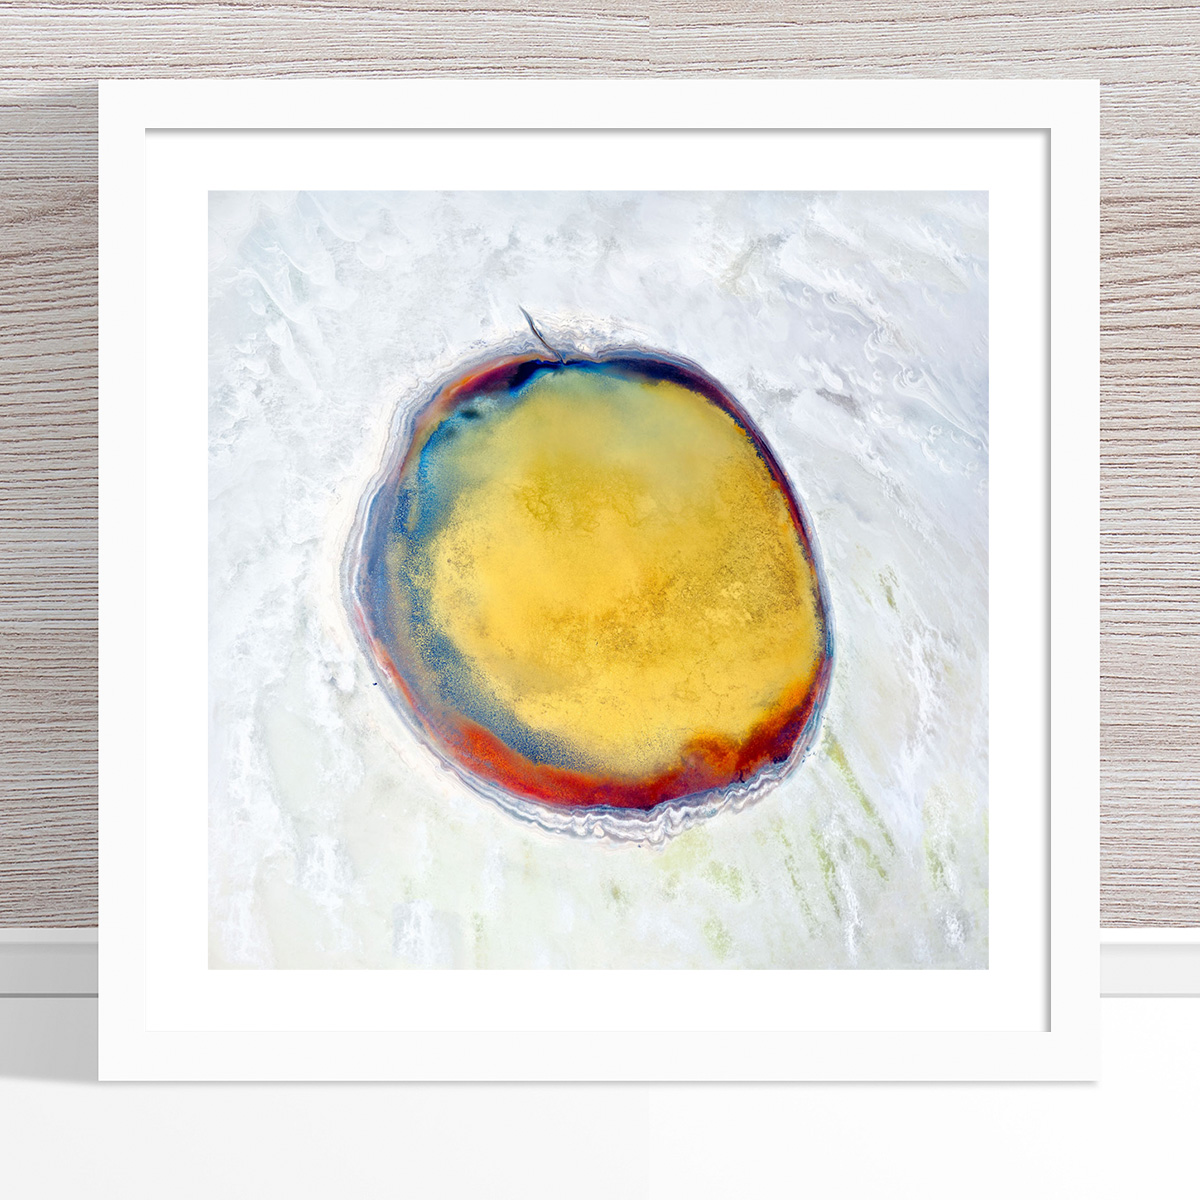 Chris Saunders - 'Aerial Salt 017' White Frame